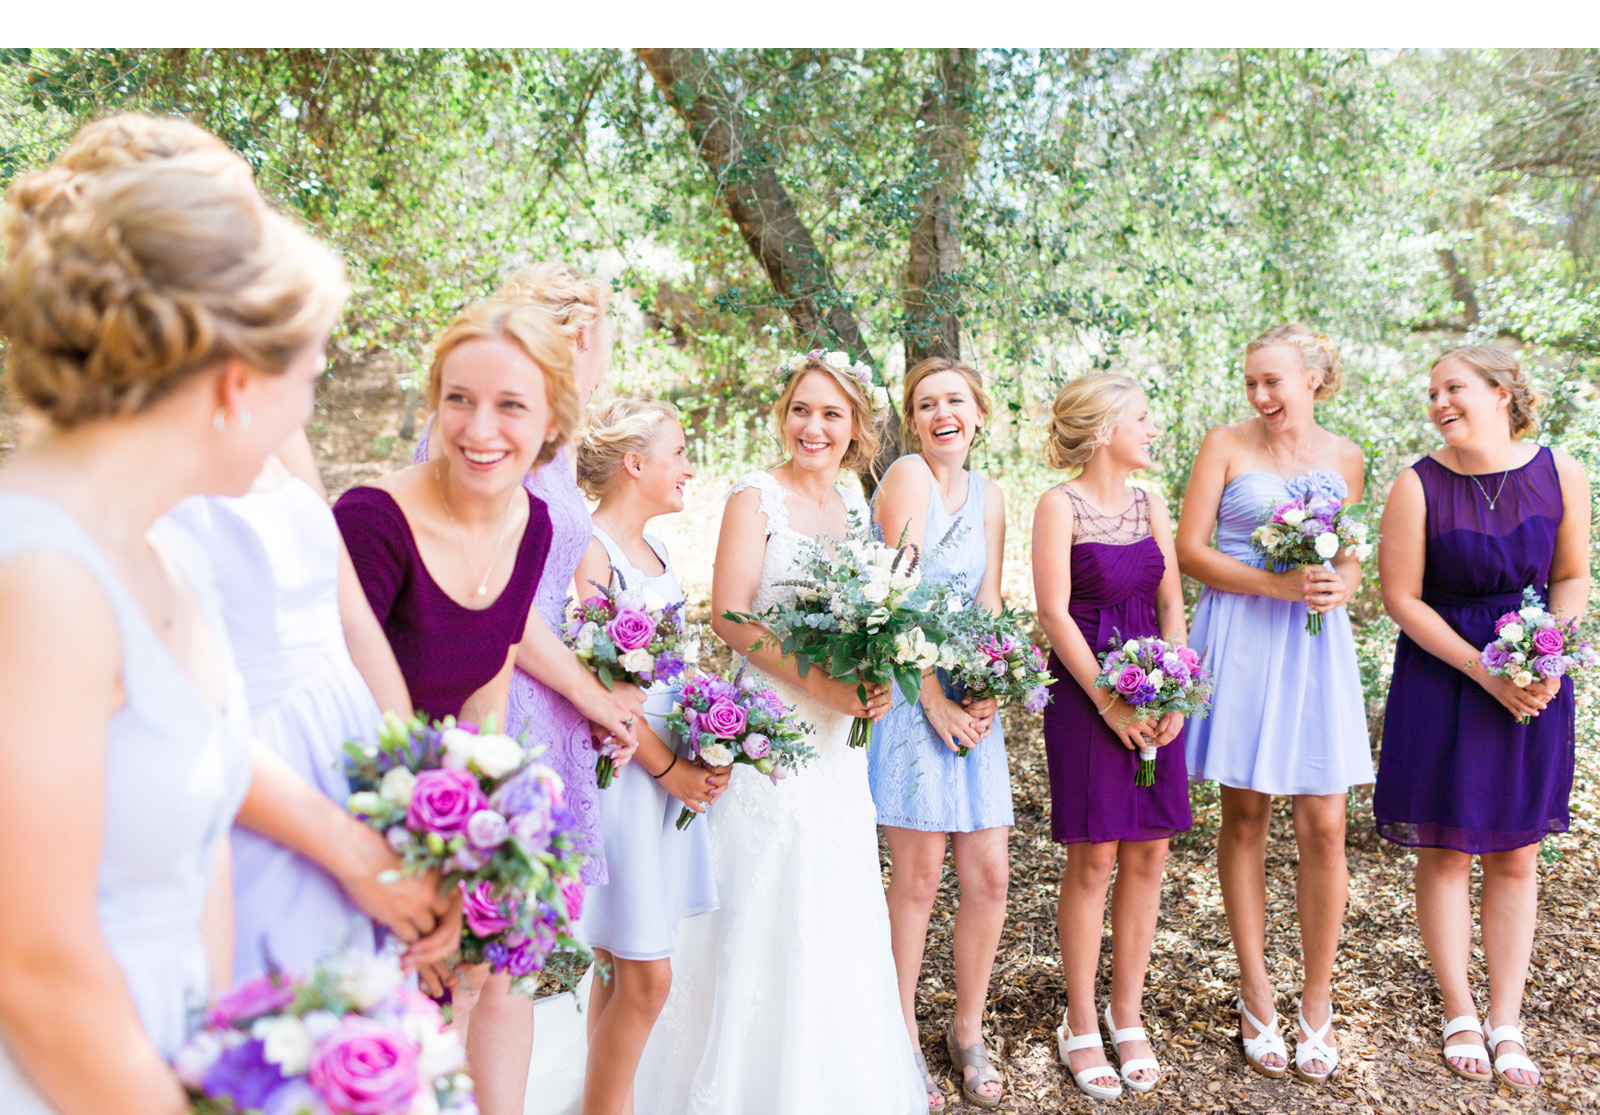 San-Diego-Ranch-Wedding---Natalie-Schutt-Photography_03.jpg